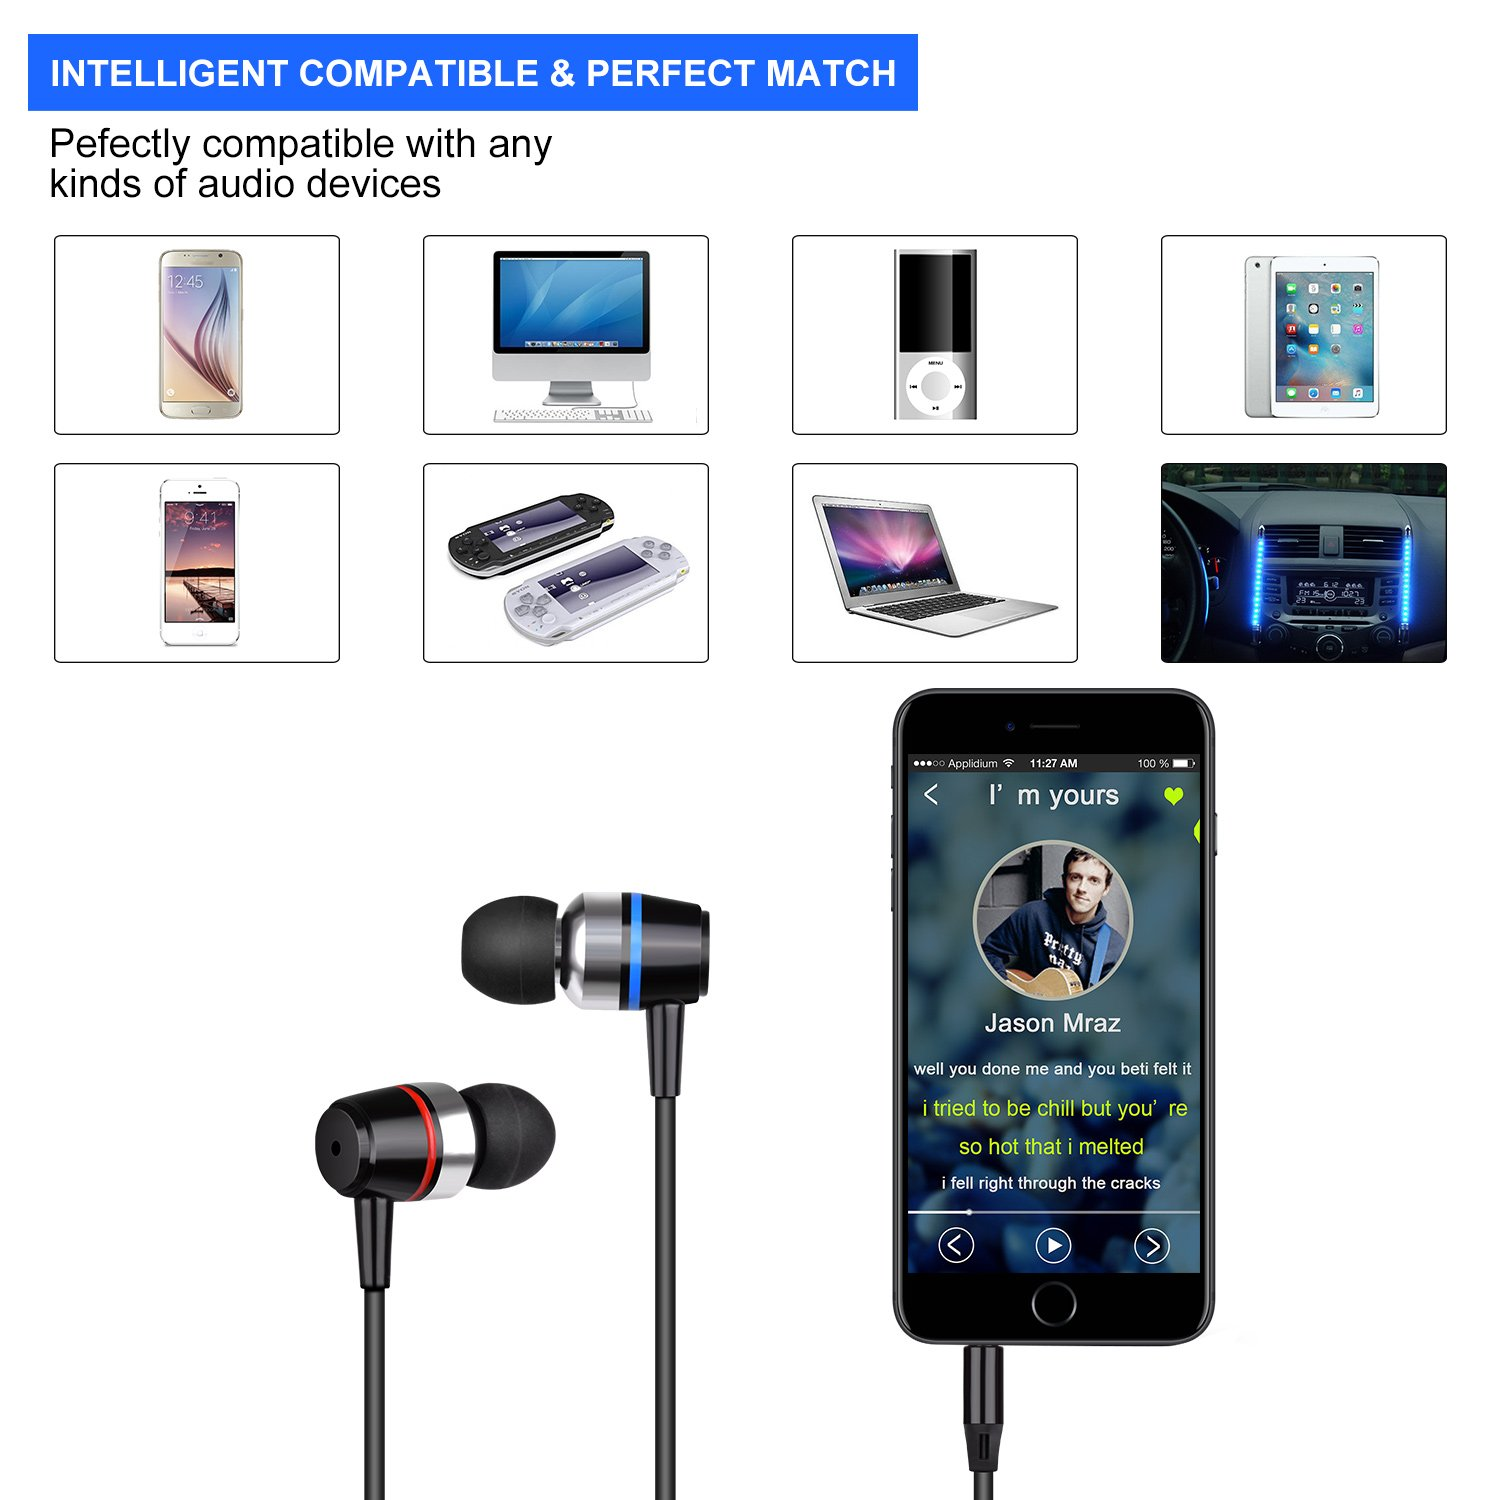 Earbuds Ear Buds Wired Earphones Headphones with Microphone Noise Cancelling Ear Phones Stereo in Ear Headphones Sports Earbuds with Mic and Volume Control Compatible iPhone Android iPad Laptop by TZCER (Image #5)